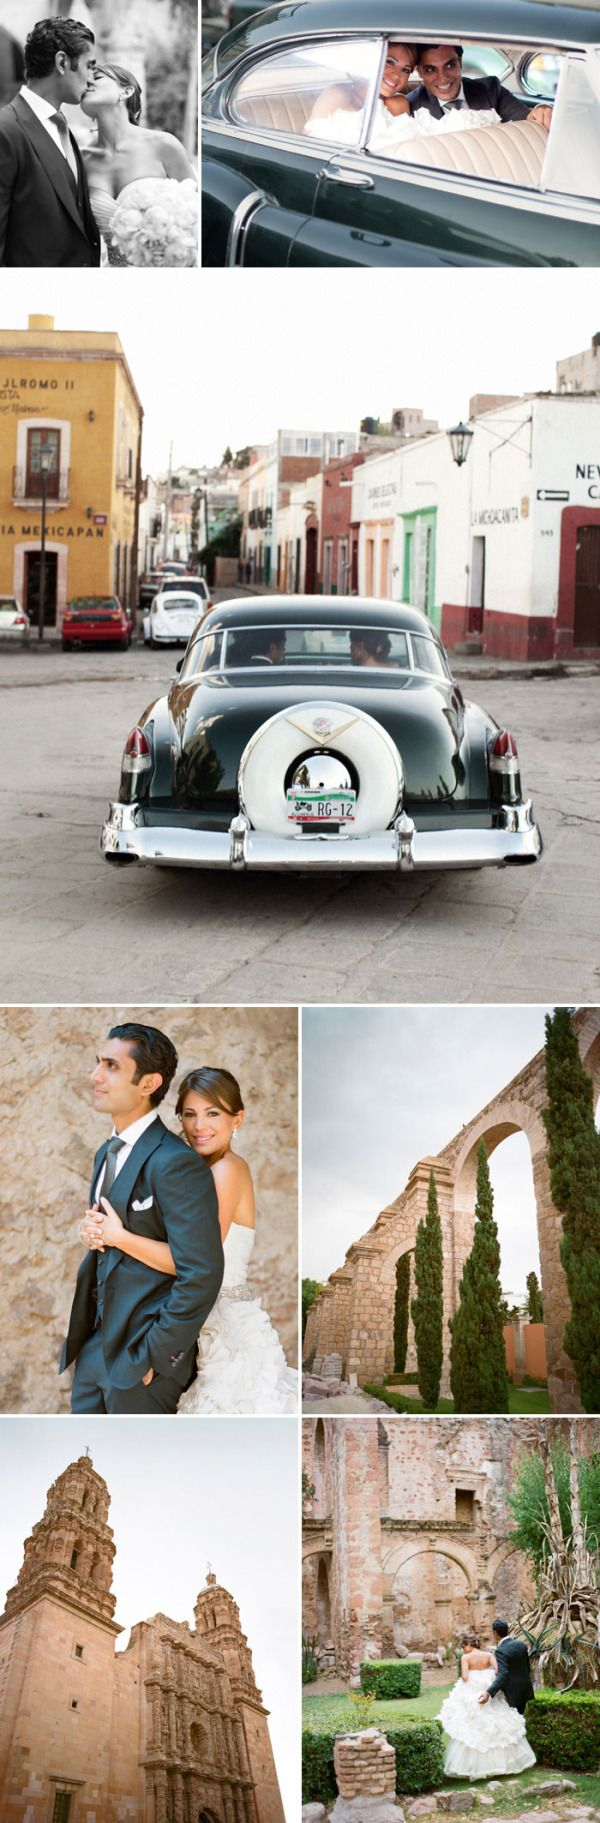 Zacatecas Wedding - When I was like 10 years old I swore I would get married in this place!  Quinta Real Zacatecas Hotel.